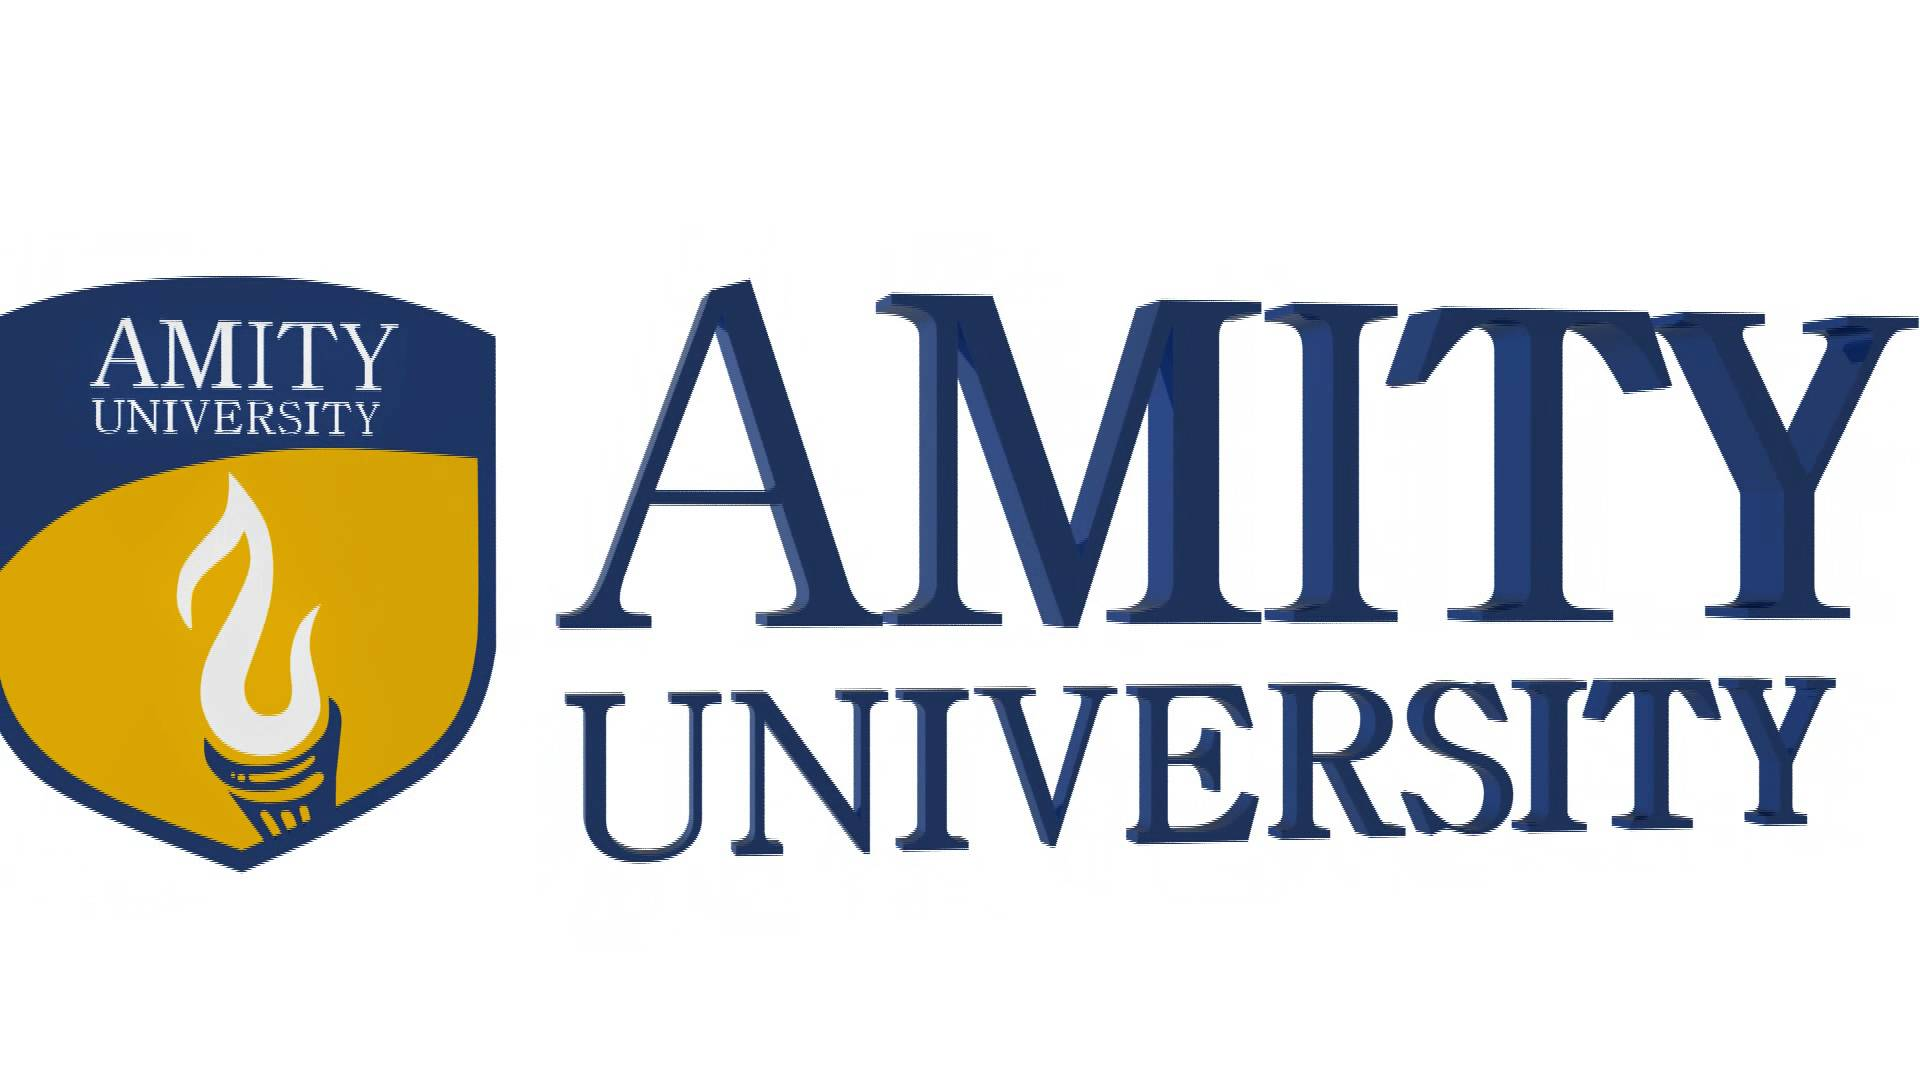 amity jee results